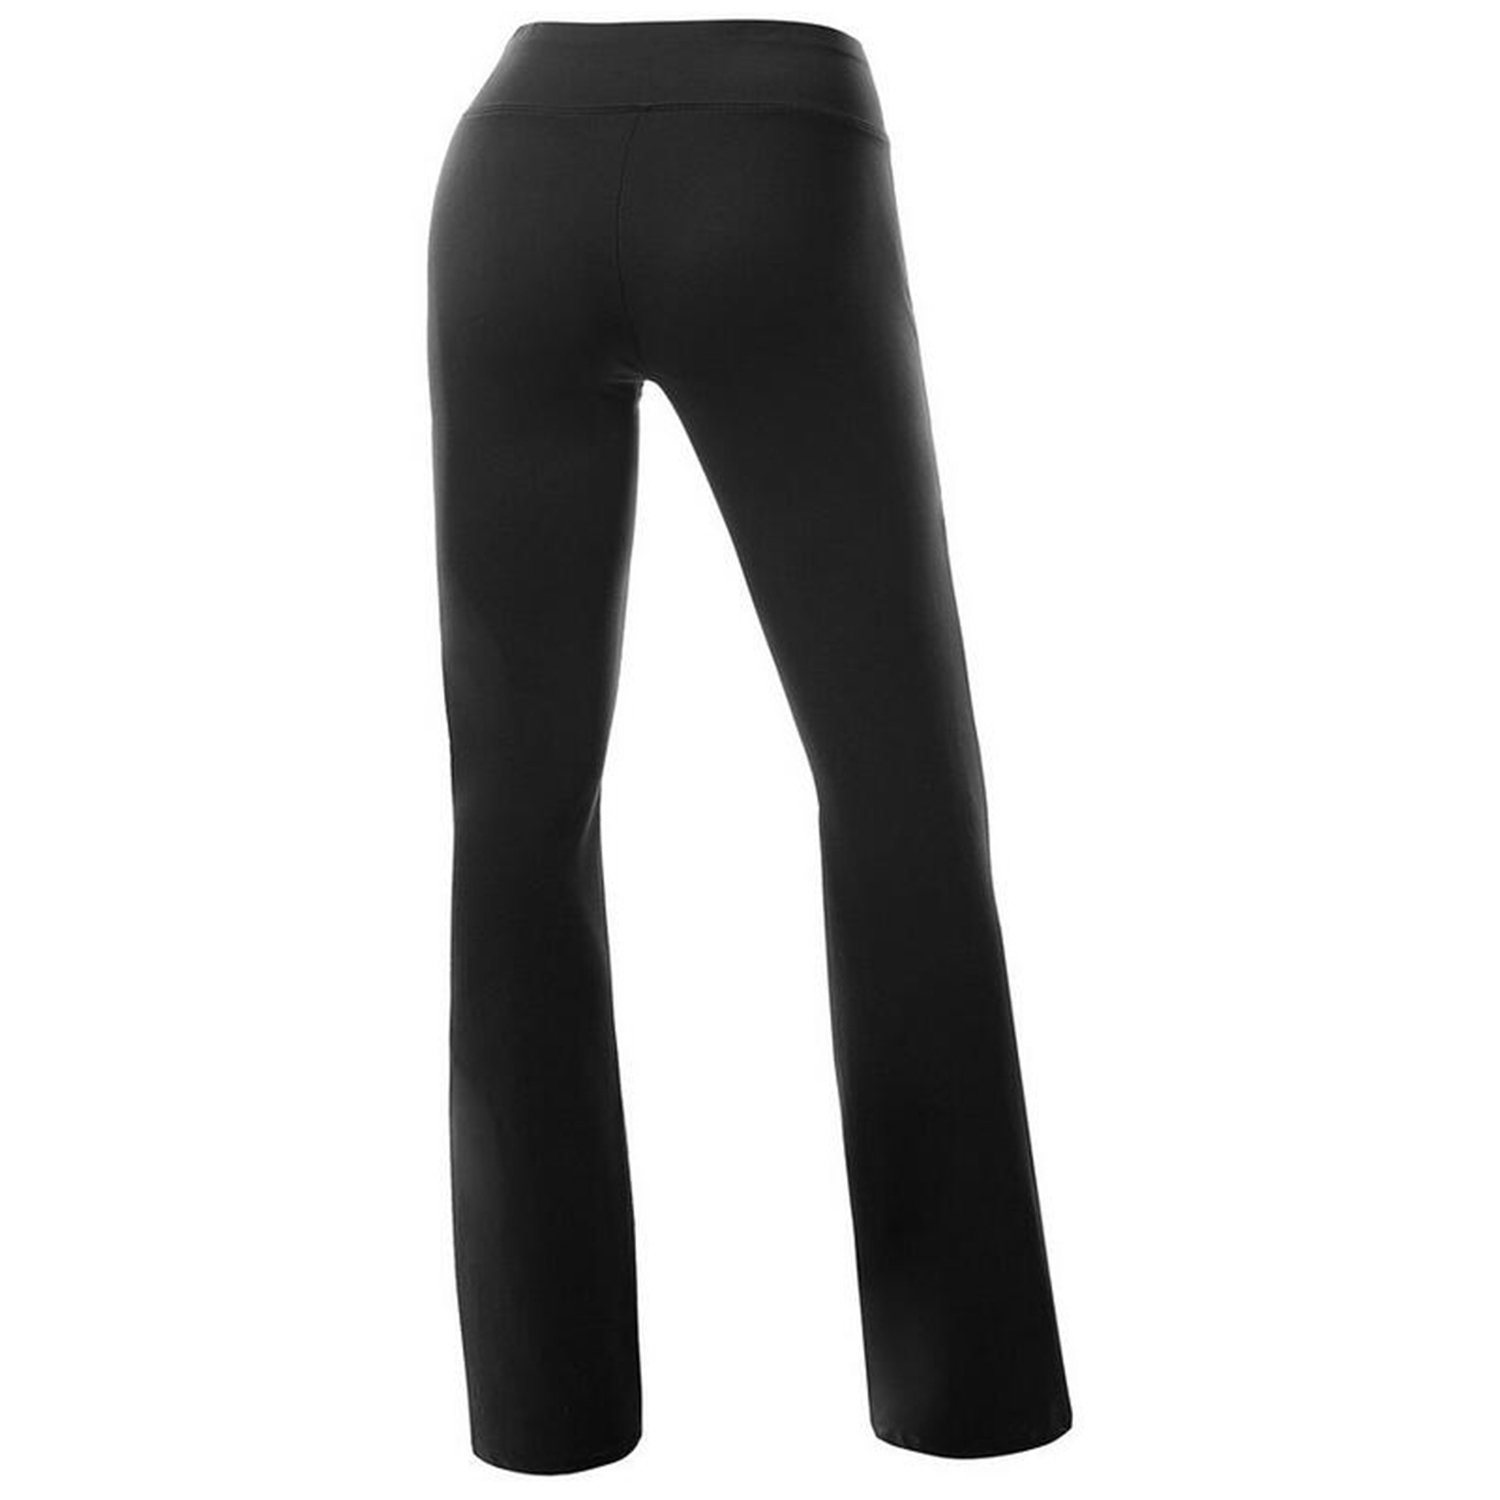 924752f3ff18 Women s Solid Boot Cut High Waisted Flare Yoga Pants Workout Casual Trousers  Comfortable Flared Leggings at Amazon Women s Clothing store